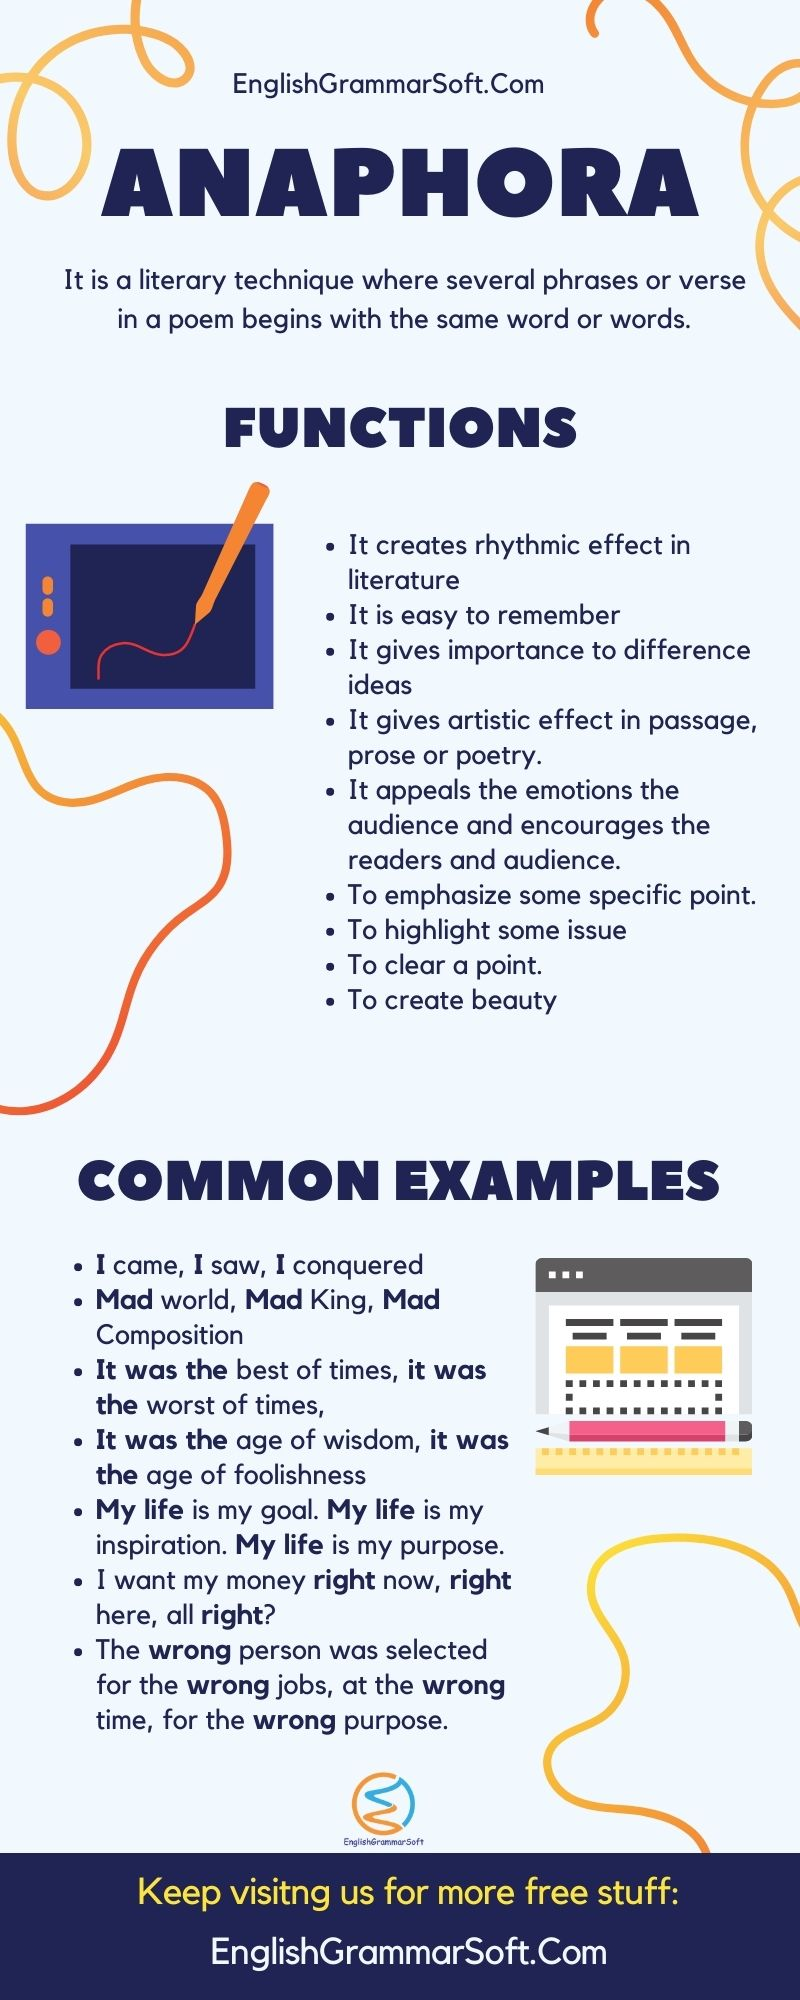 Anaphora Examples, Functions & Use in Poetry